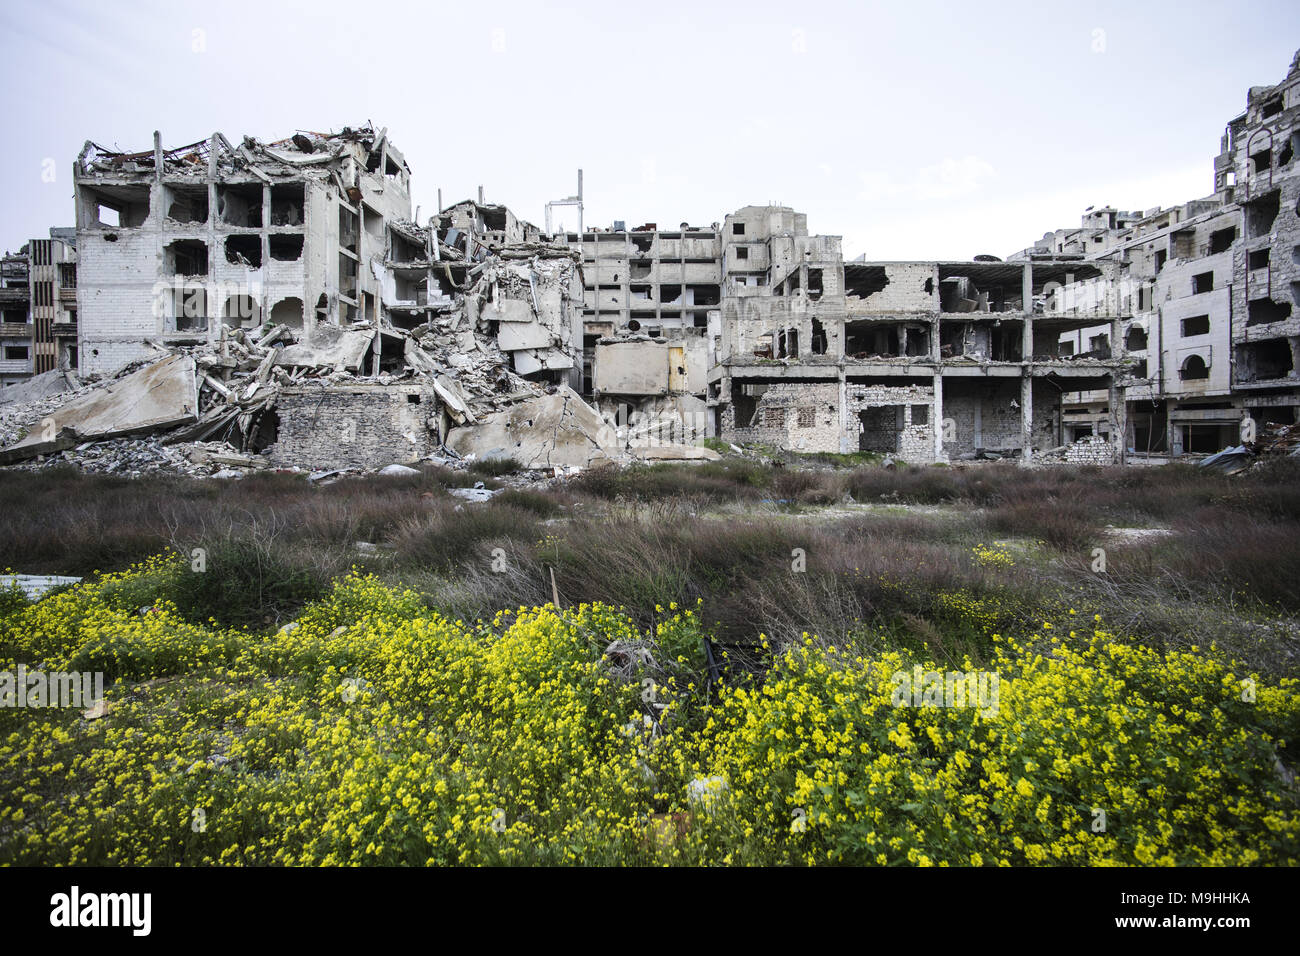 the city of Homs in Syria - Stock Image